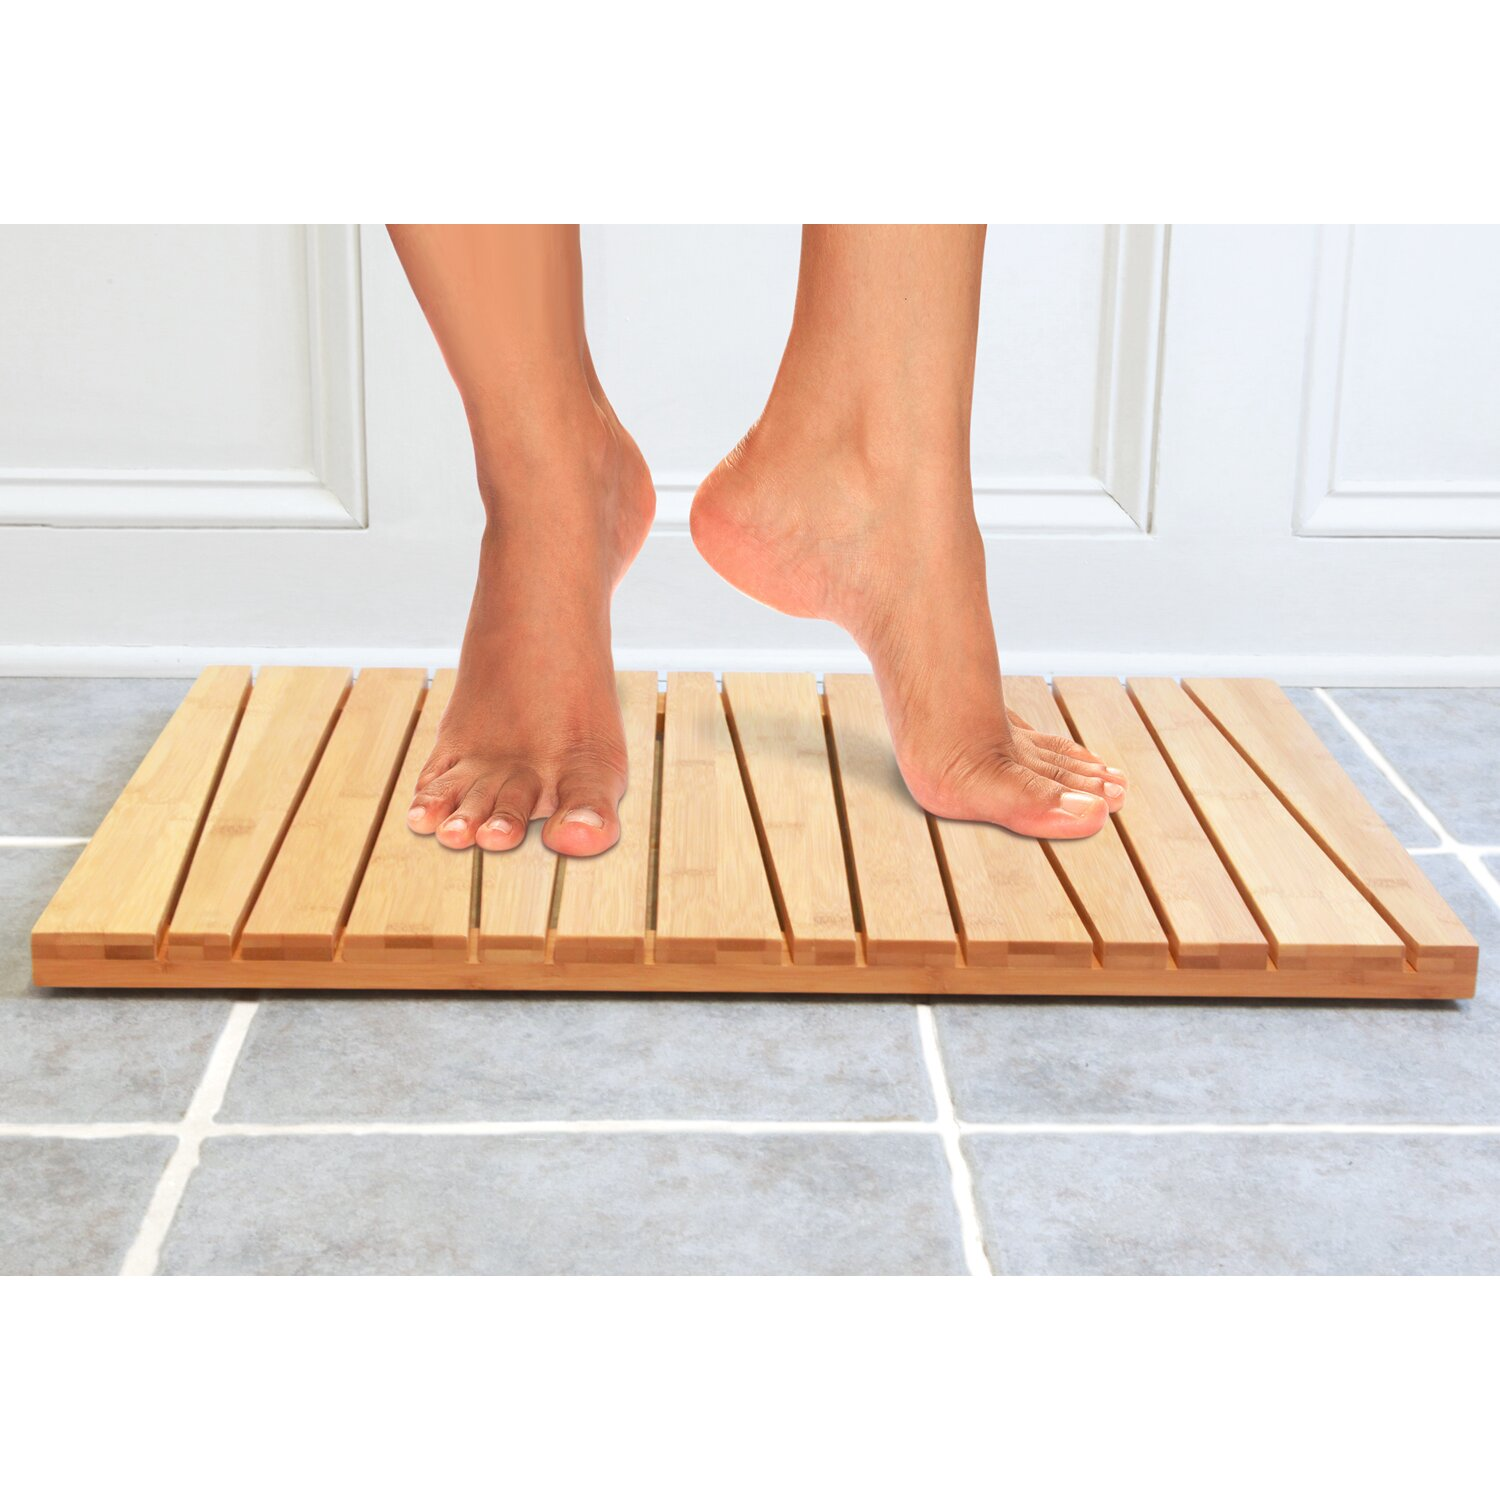 Rubber mats exeter - Toilet Tree Products Bamboo Deluxe Shower Mat